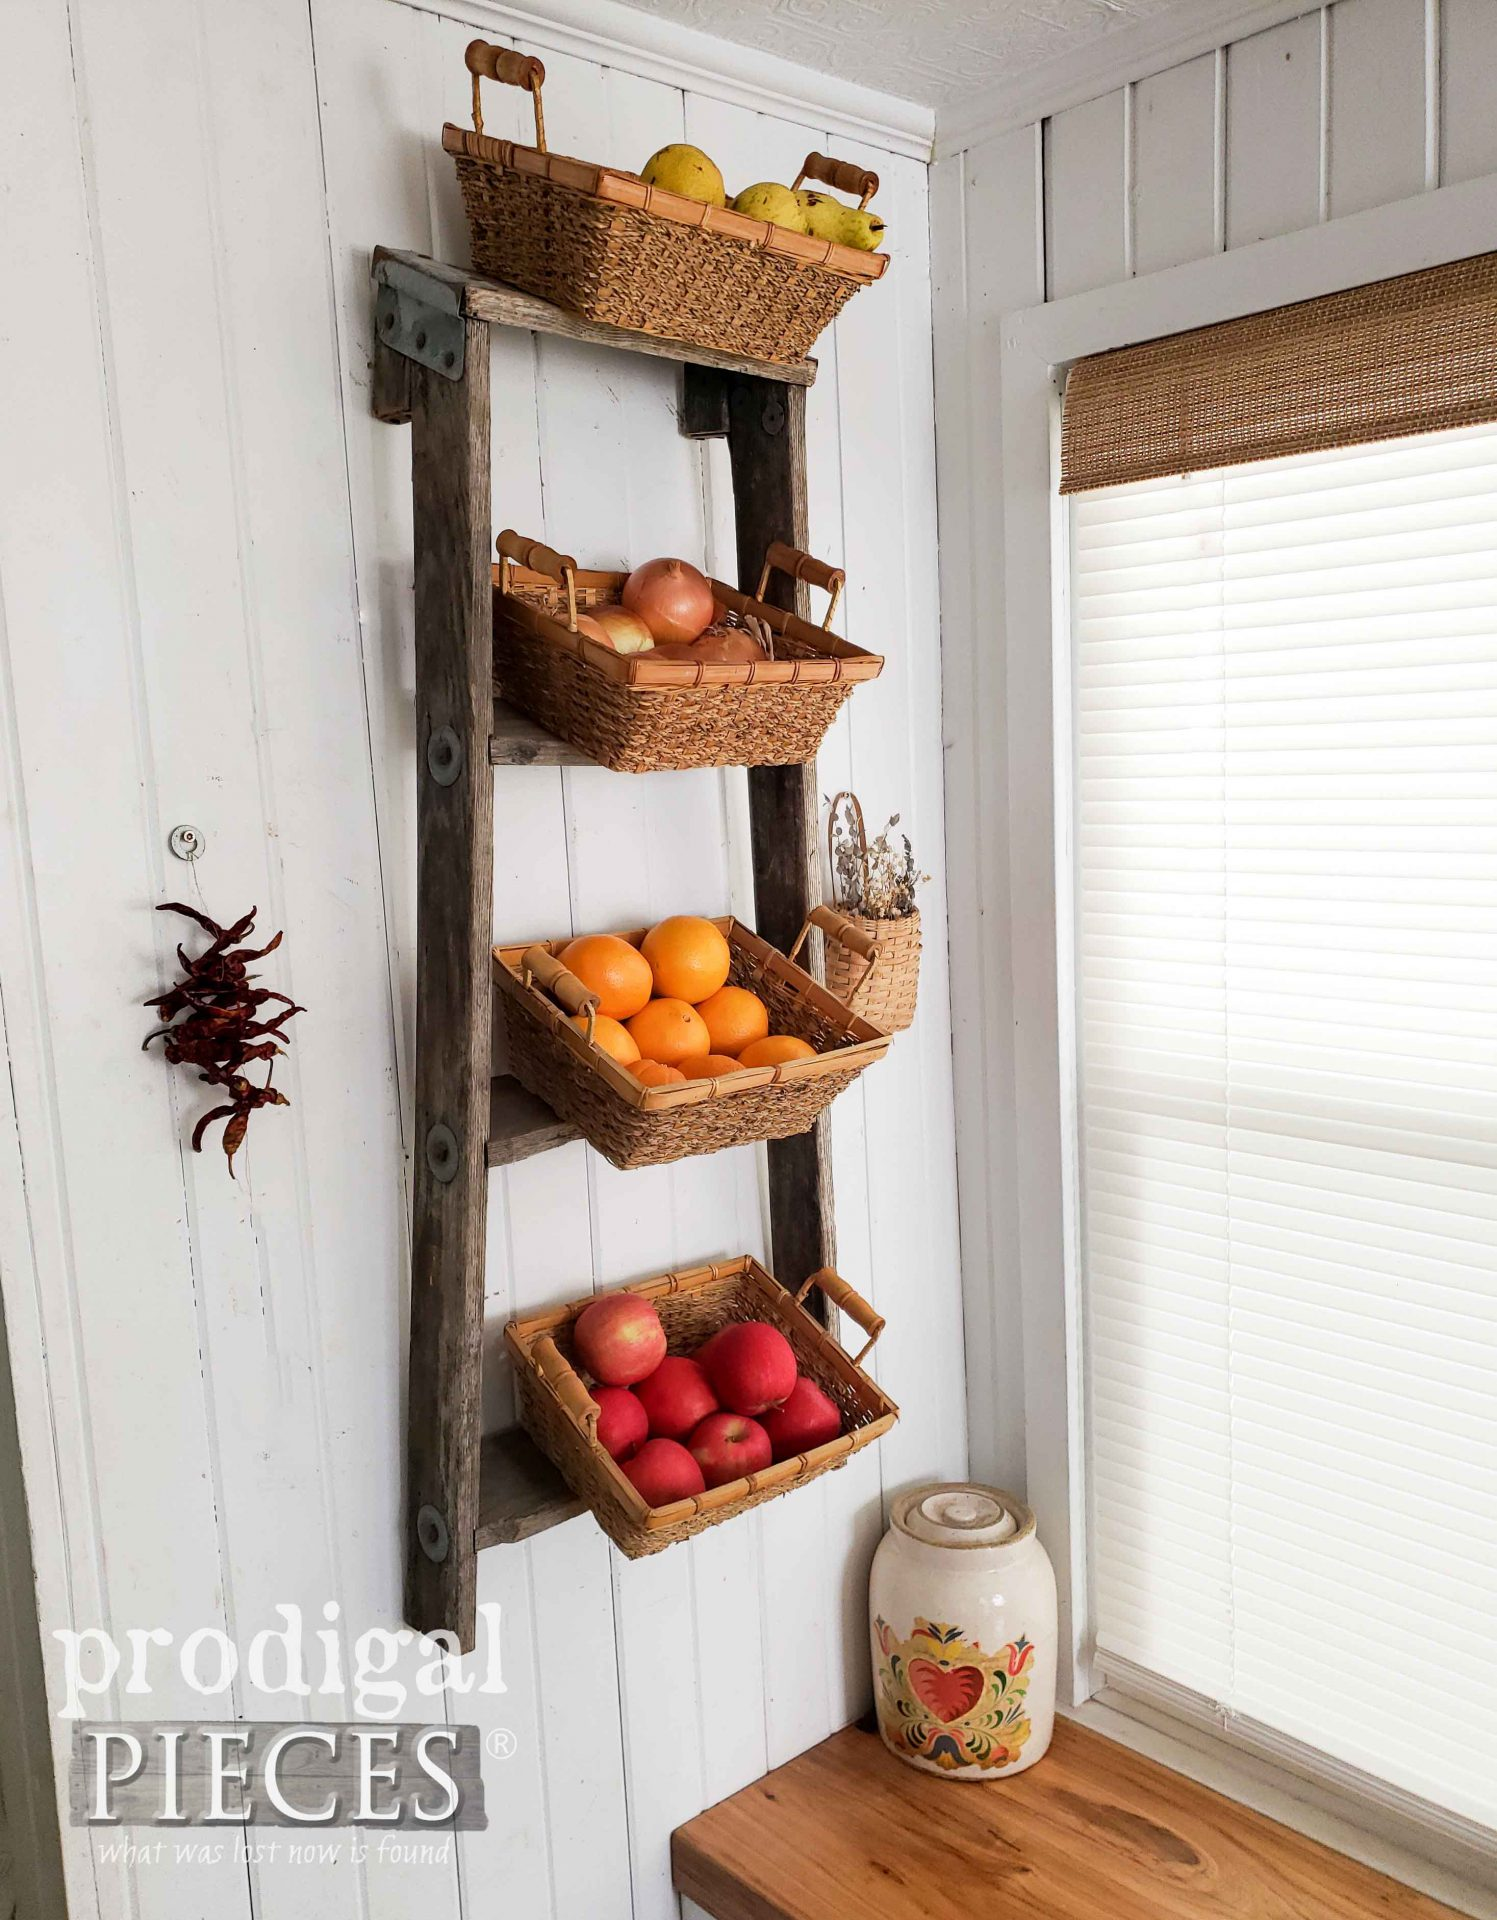 Old Broken Ladder Turned Produce Storage for Farmhouse Kitchen Decor by Larissa of Prodigal Pieces | prodigalpieces.com #prodigalpieces #diy #farmhouse #kitchen #homedecor #storage